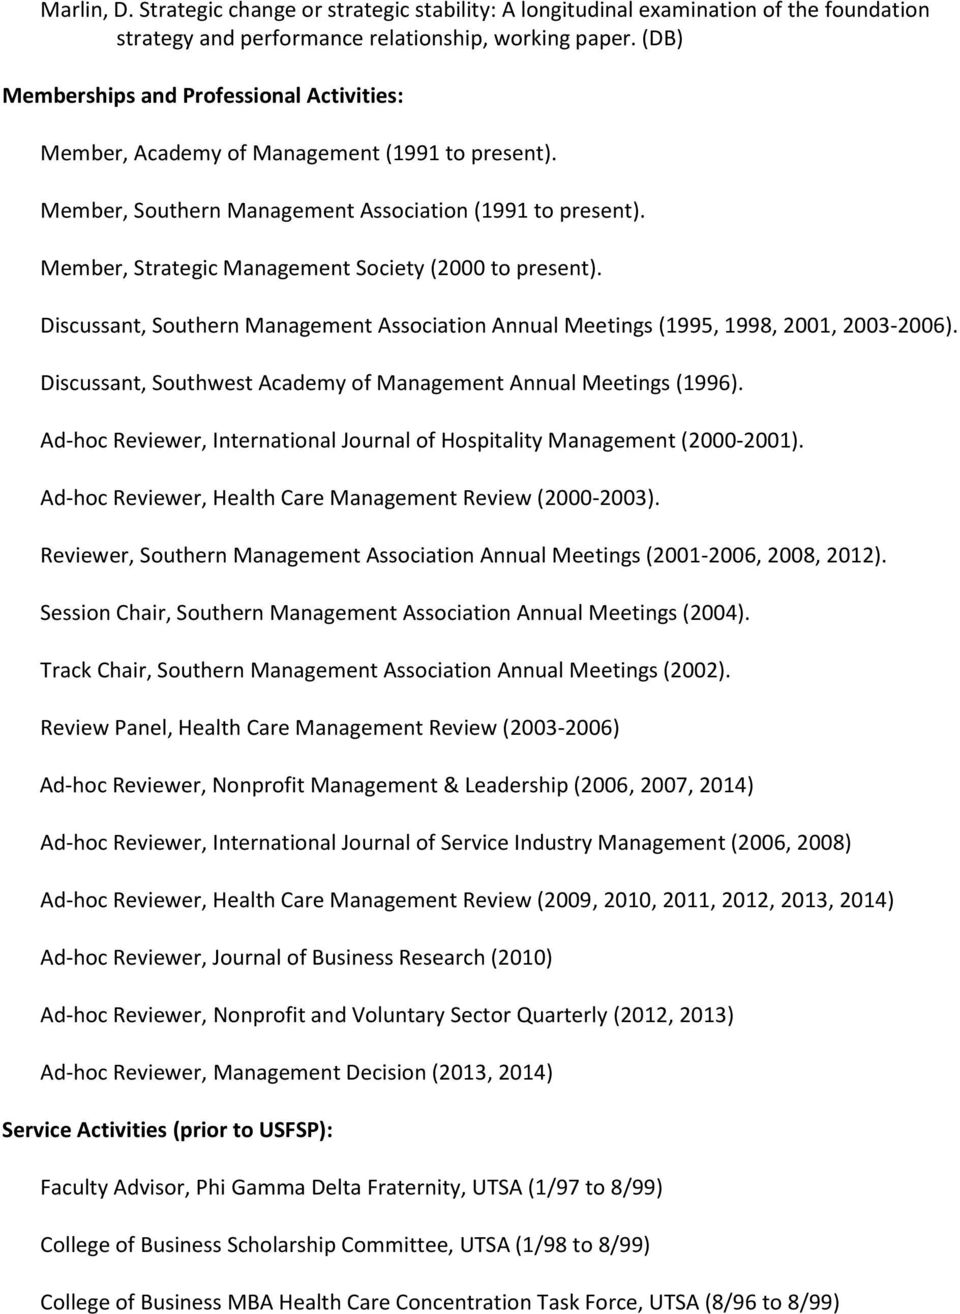 Member, Strategic Management Society (2000 to present). Discussant, Southern Management Association Annual Meetings (1995, 1998, 2001, 2003-2006).